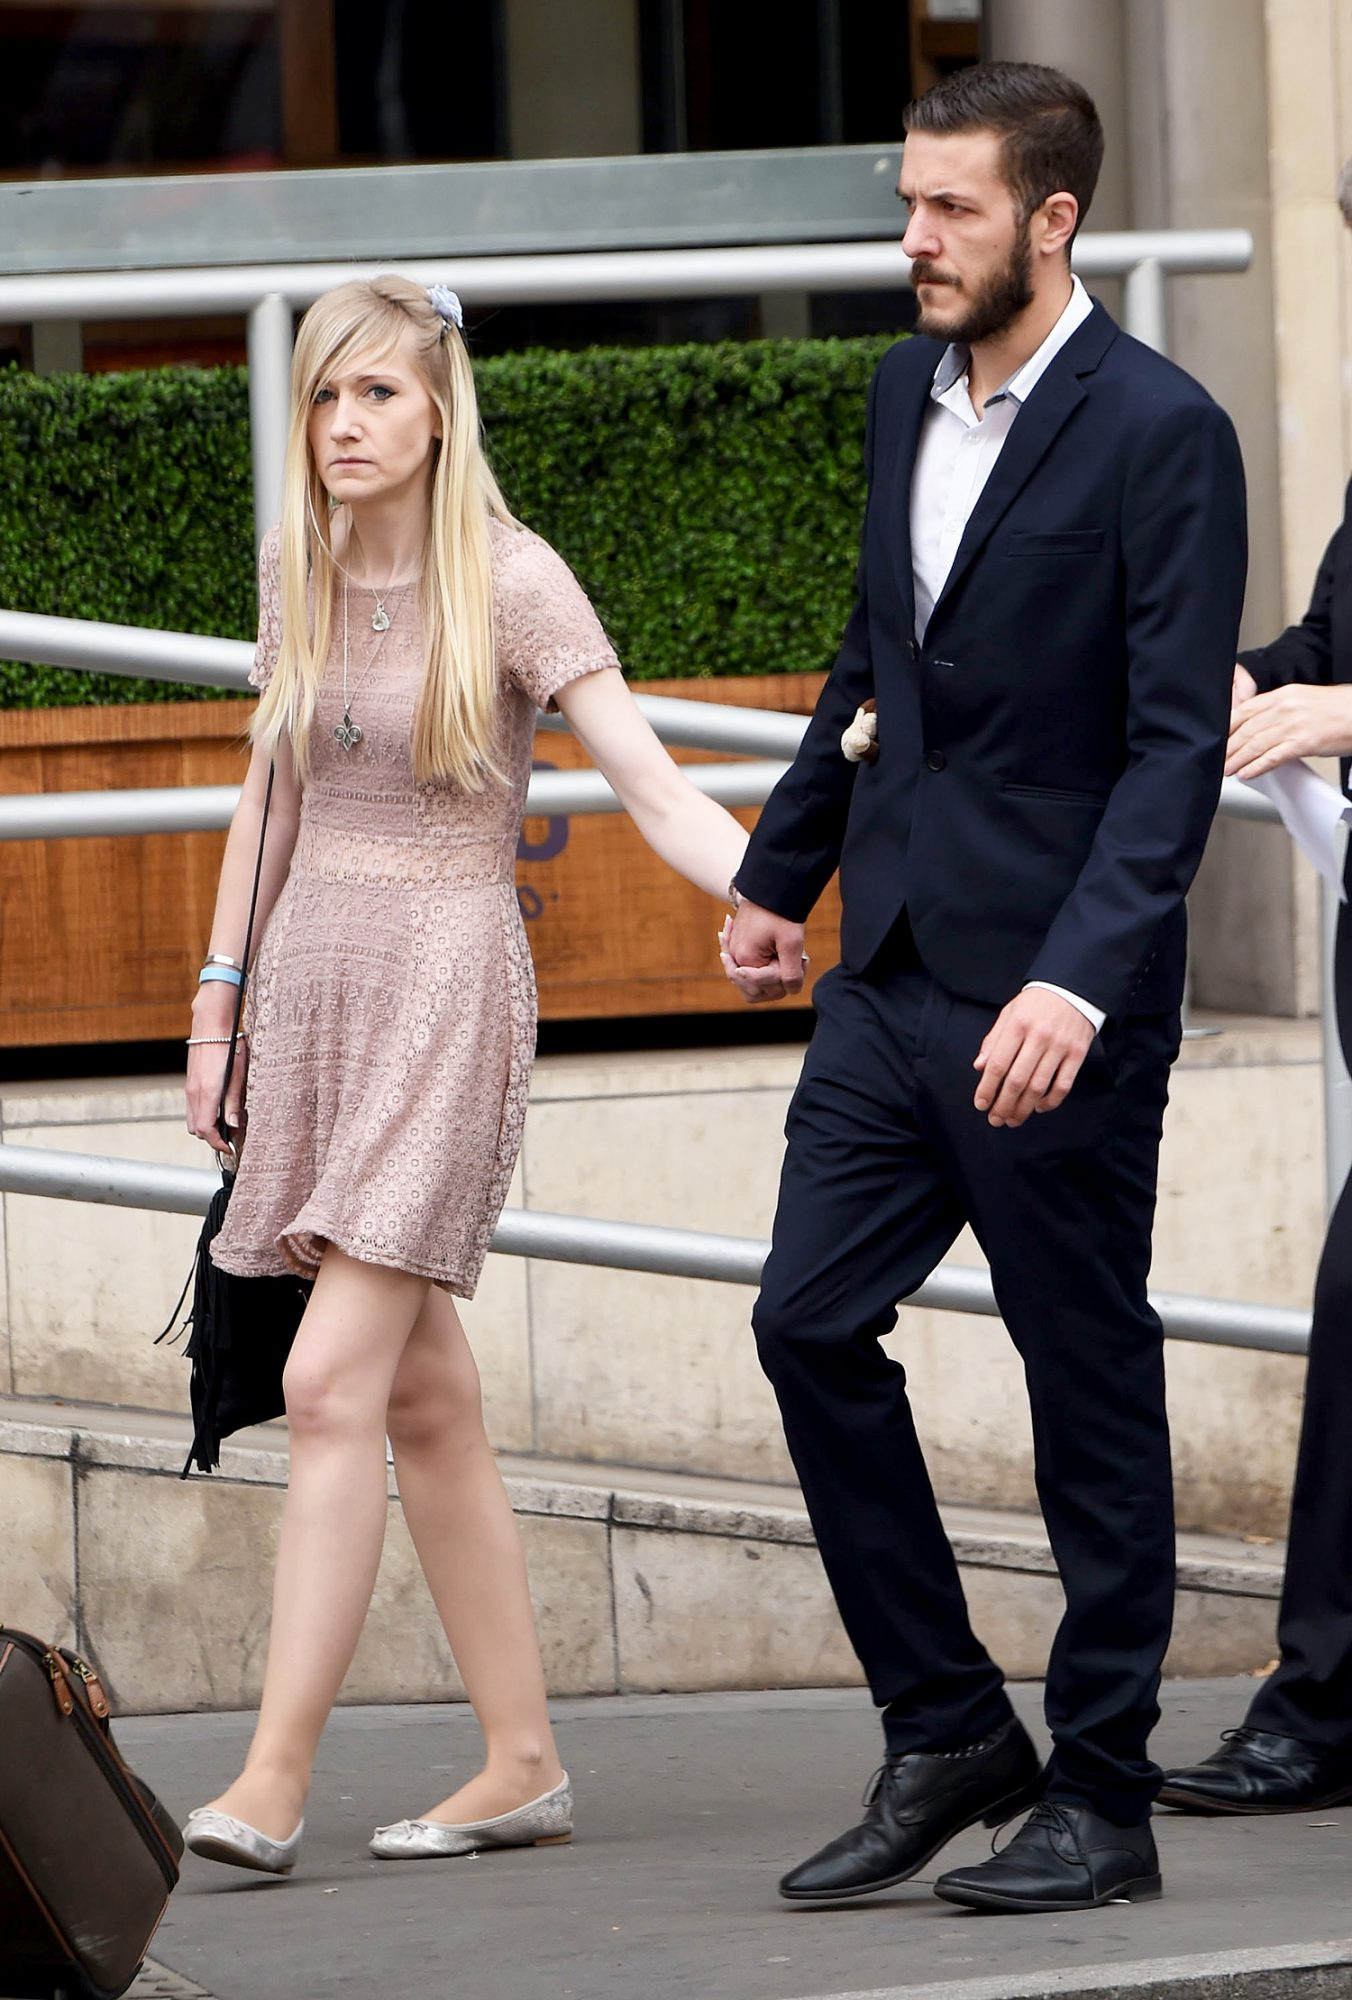 Chris Gard and Connie Yates arrive at the High Court this morning for the latest judgement on their son Charlie